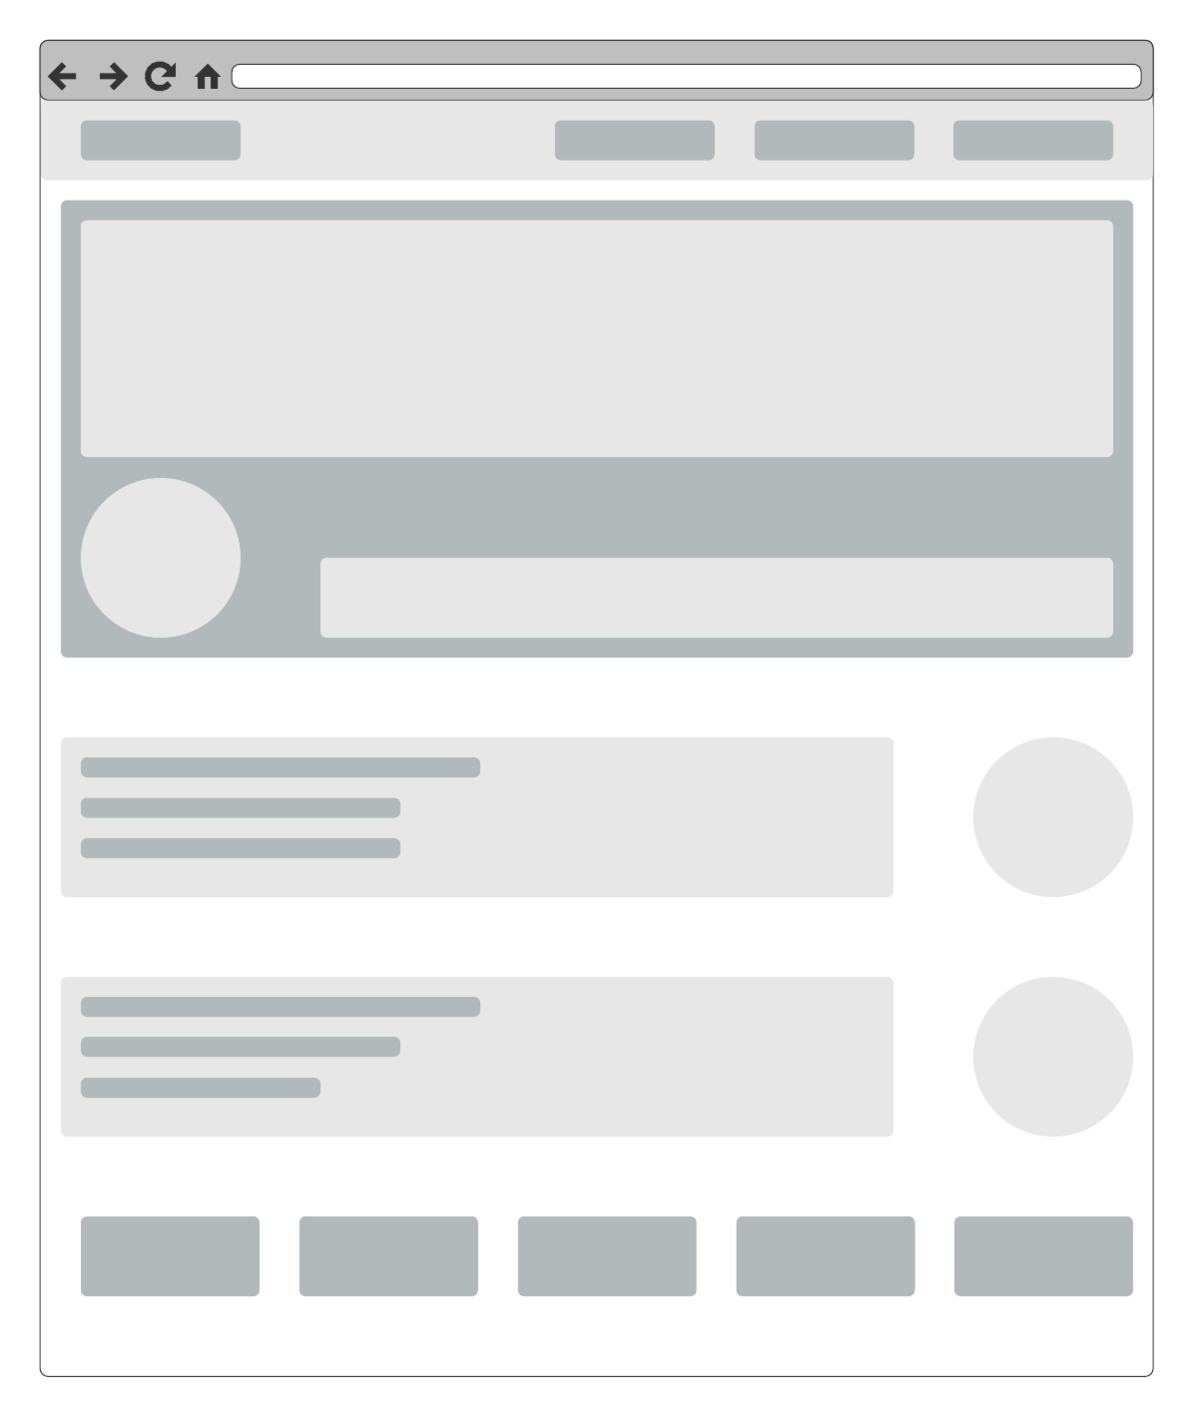 Low-Fidelity-Wireframe